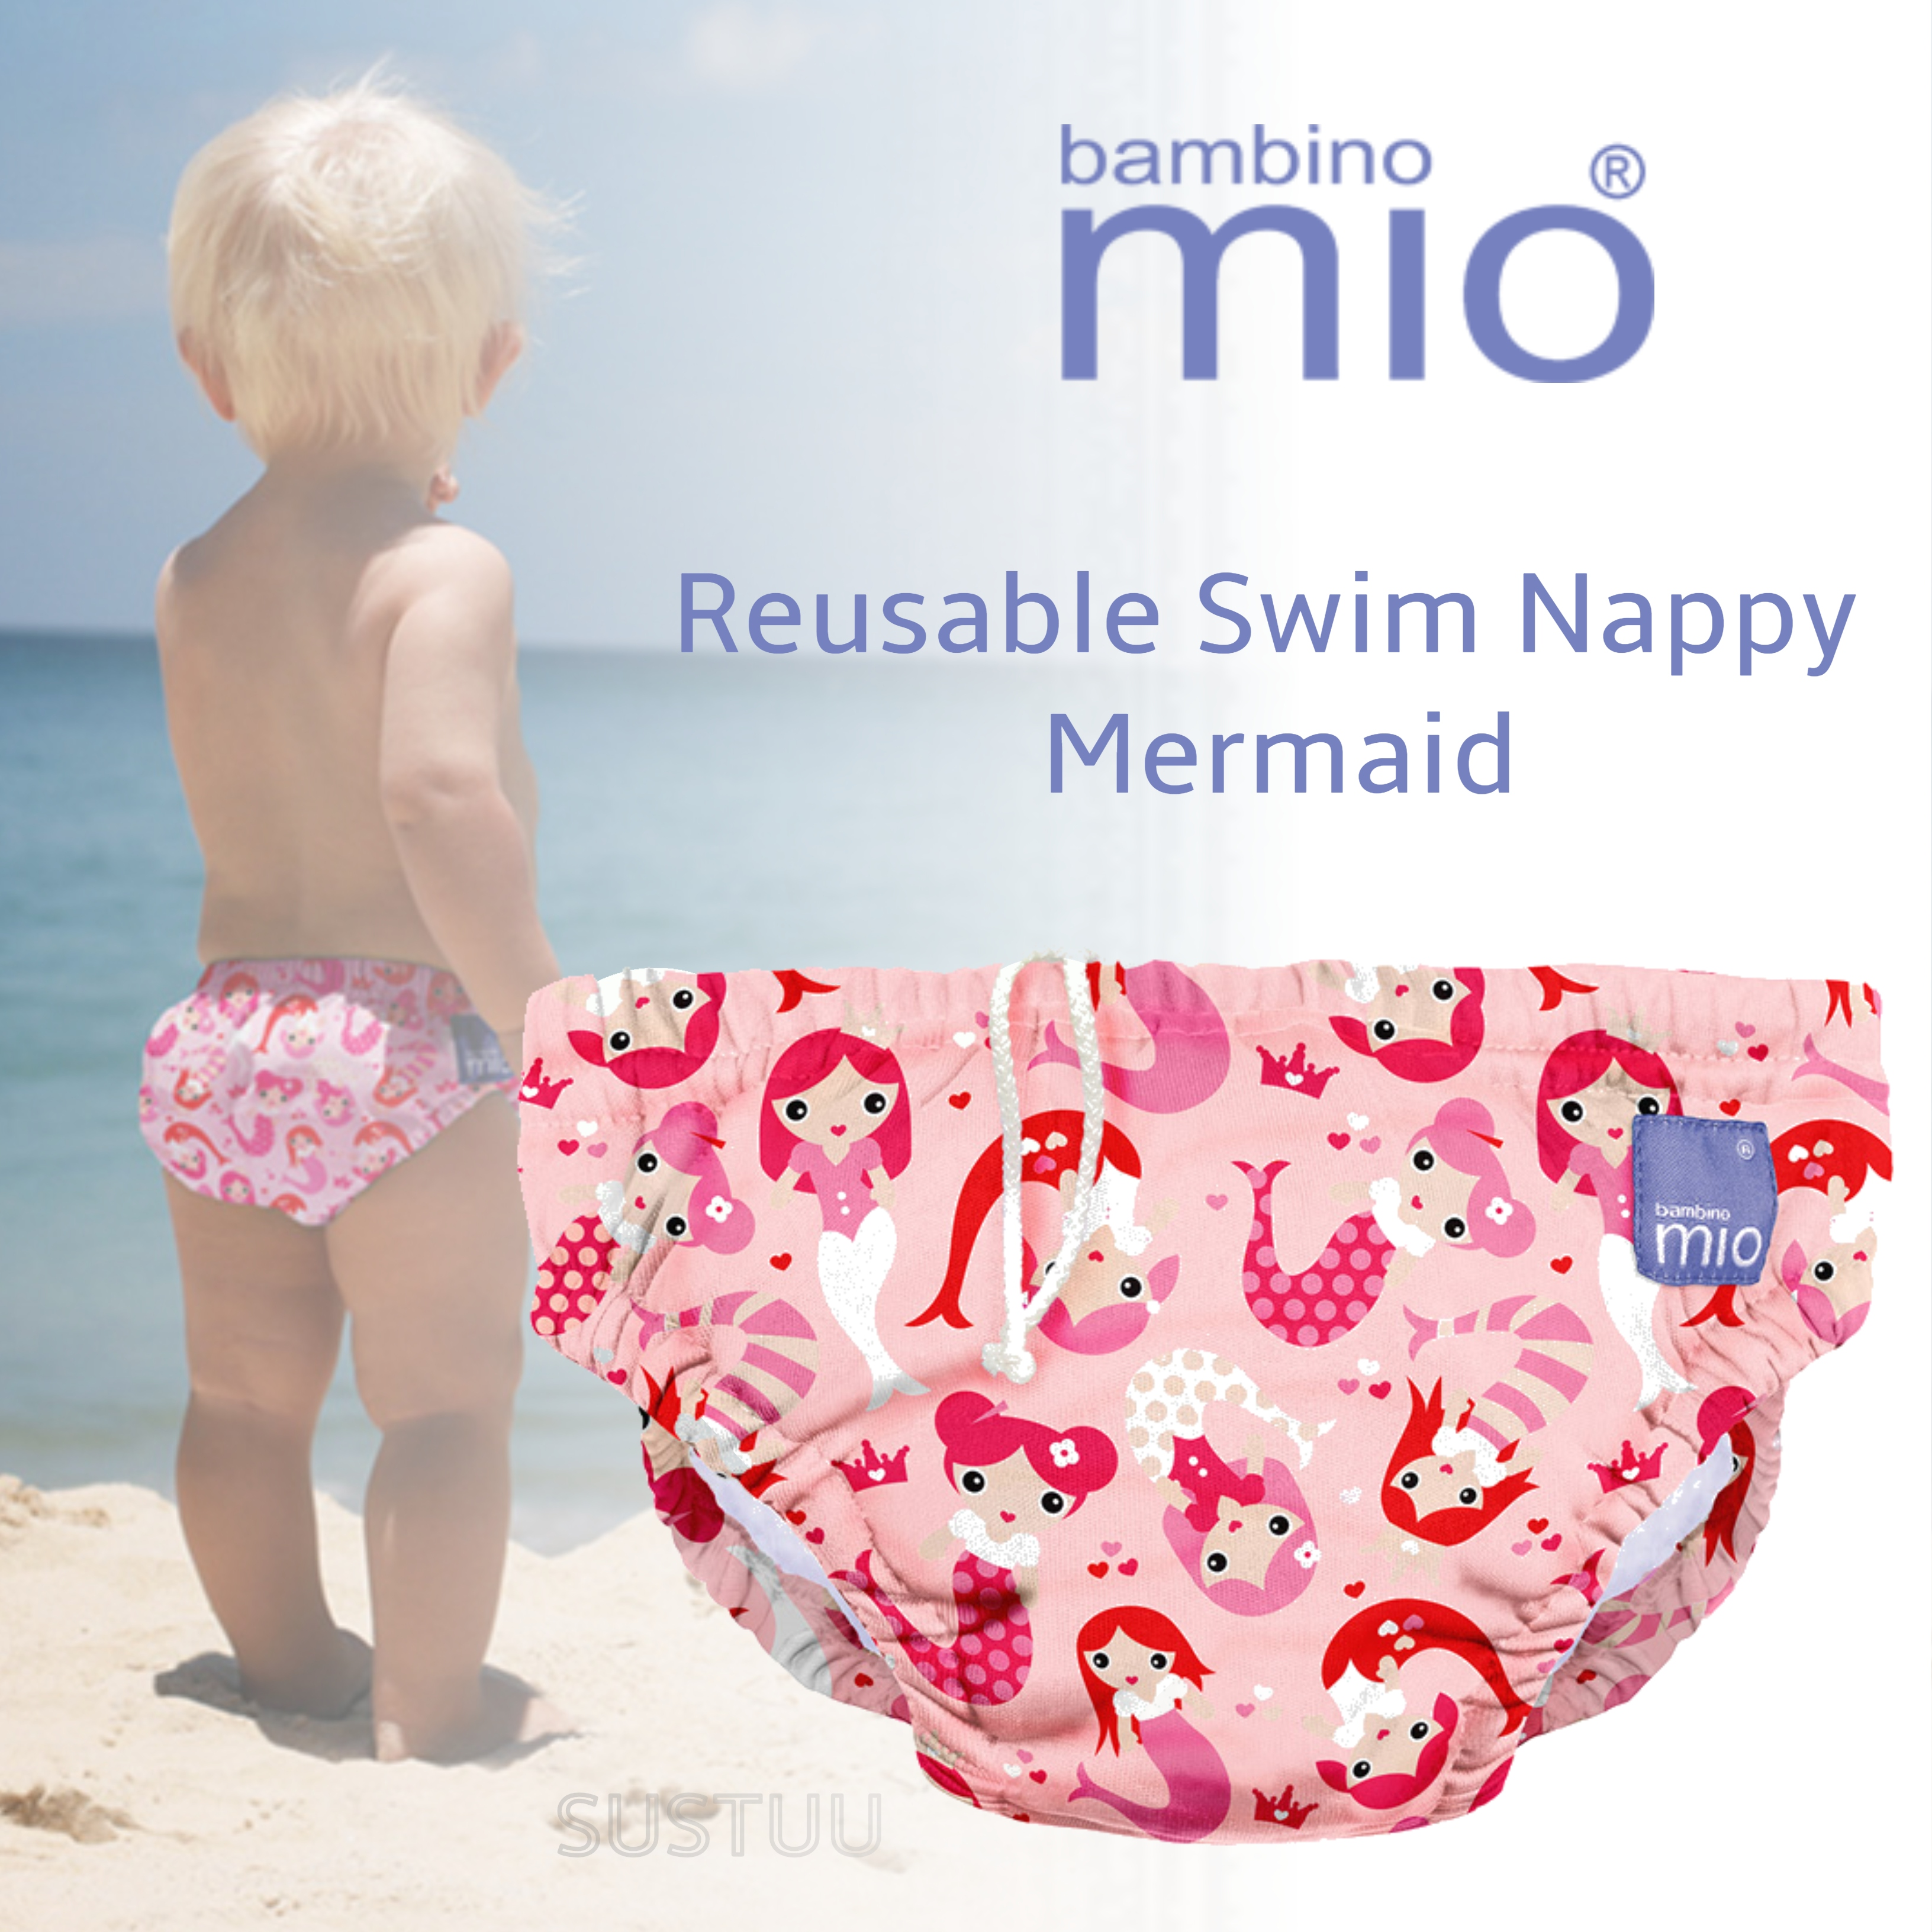 Bambino Mio Reusable Kid Swim Nappy Mermaid|Water Resist Layer|Soft Cotton|6-12m